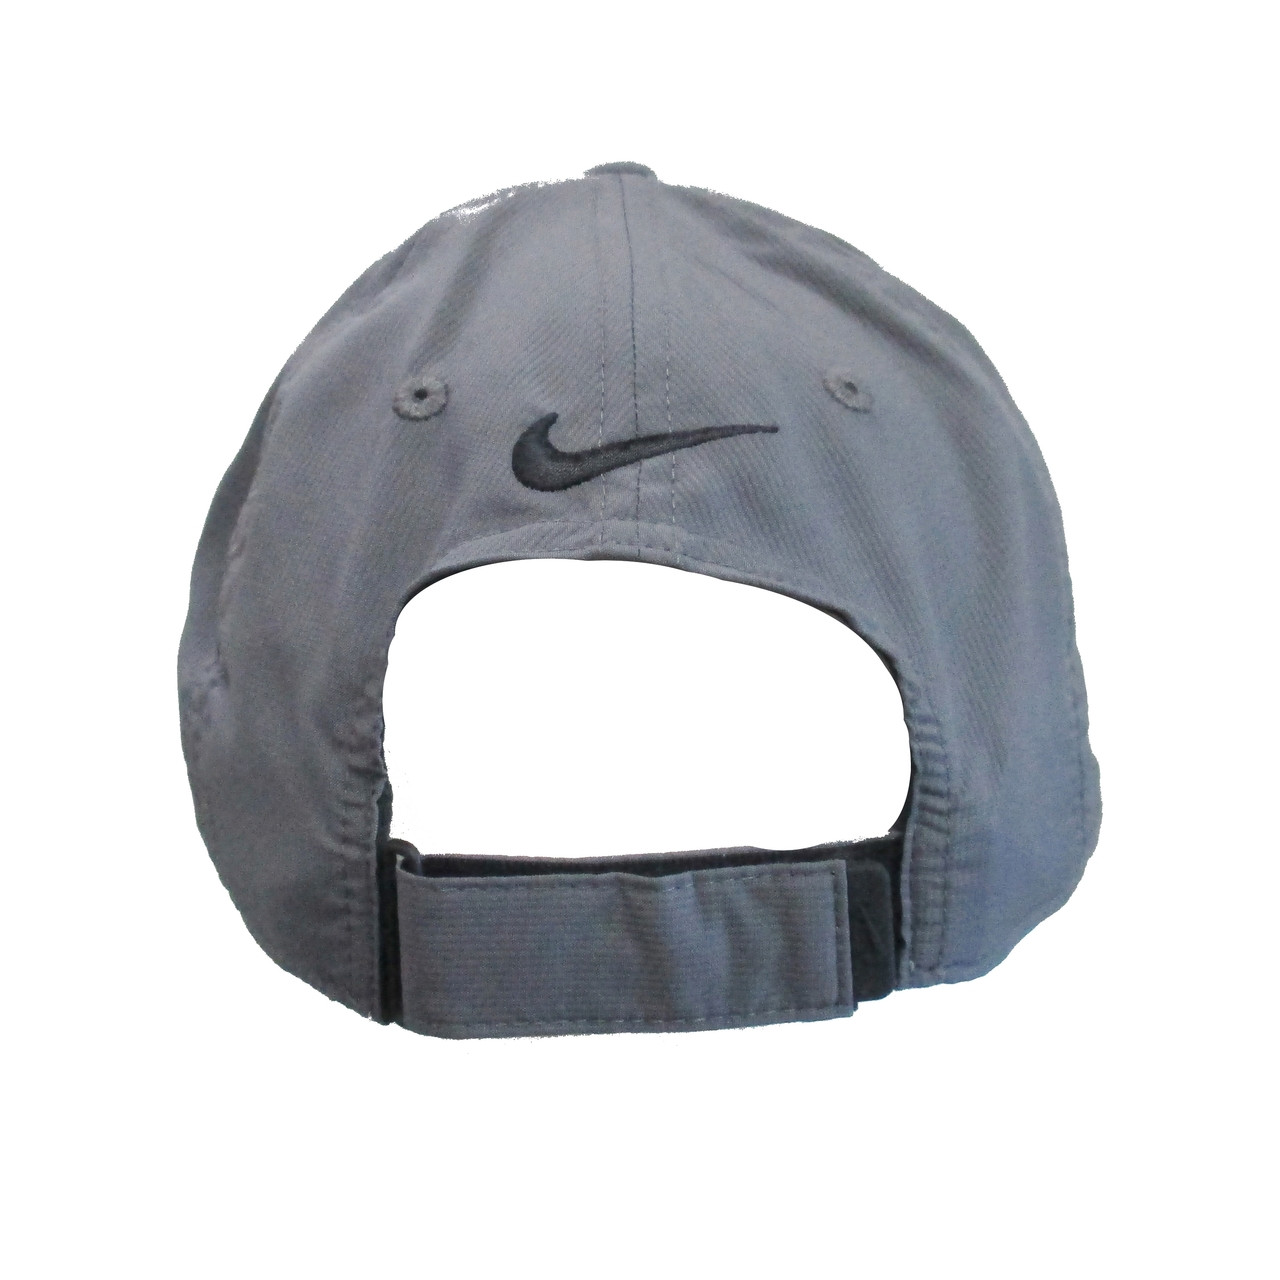 2e62b9d74497 Wing Wheel and Flag Nike Dark Grey Cap. Give your head a treat with this  high-quality